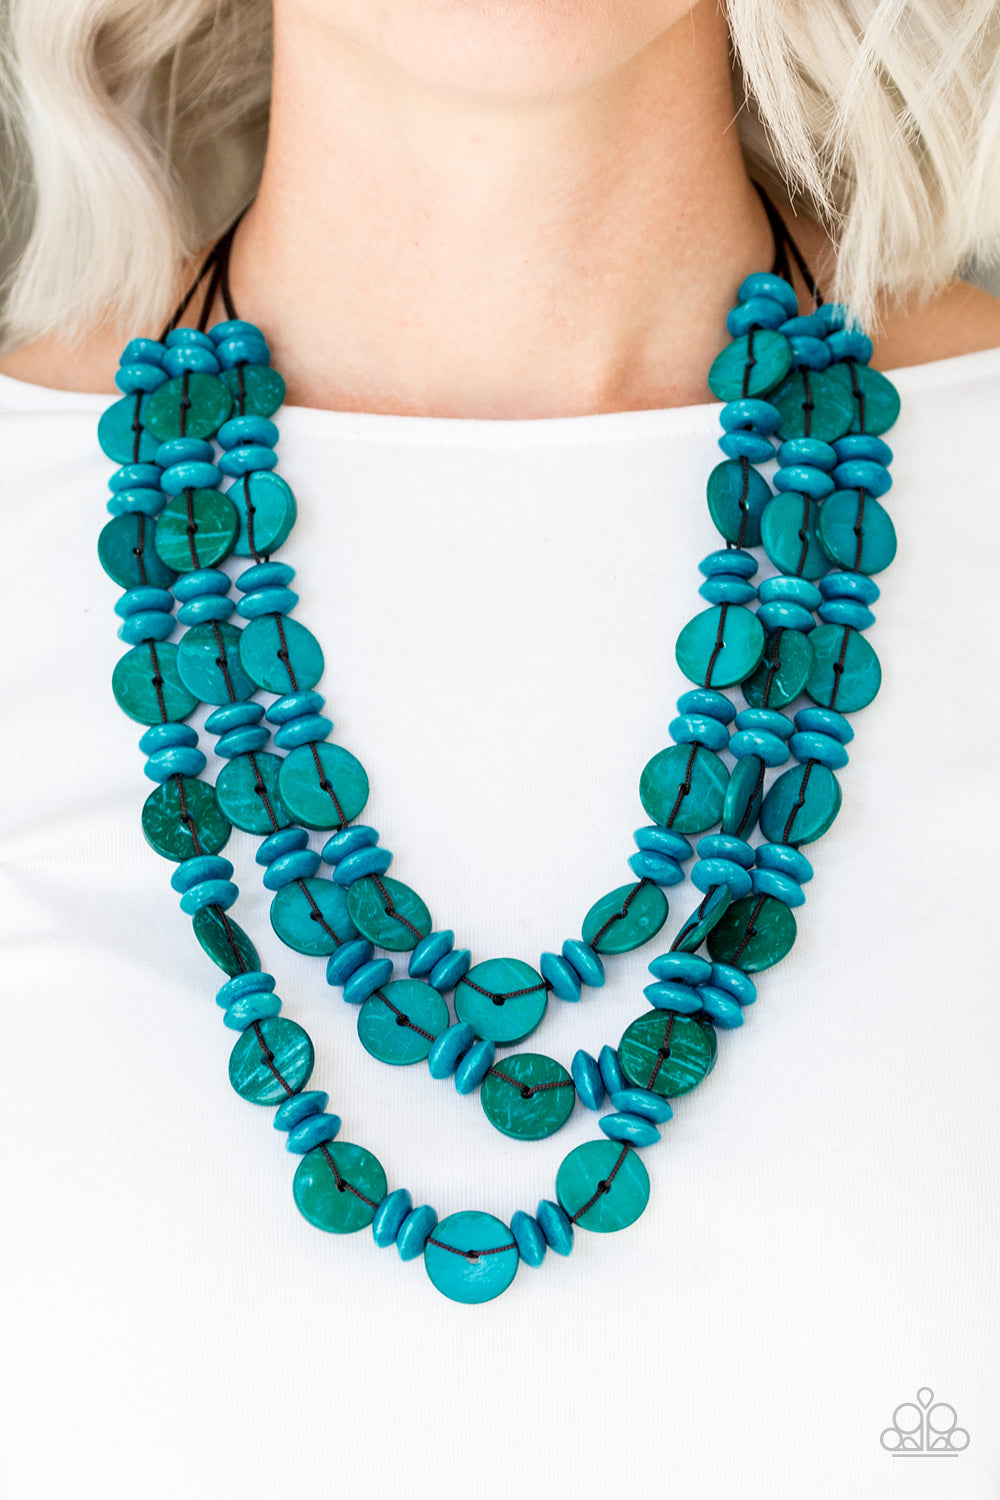 Barbados Bopper - blue - Paparazzi necklace